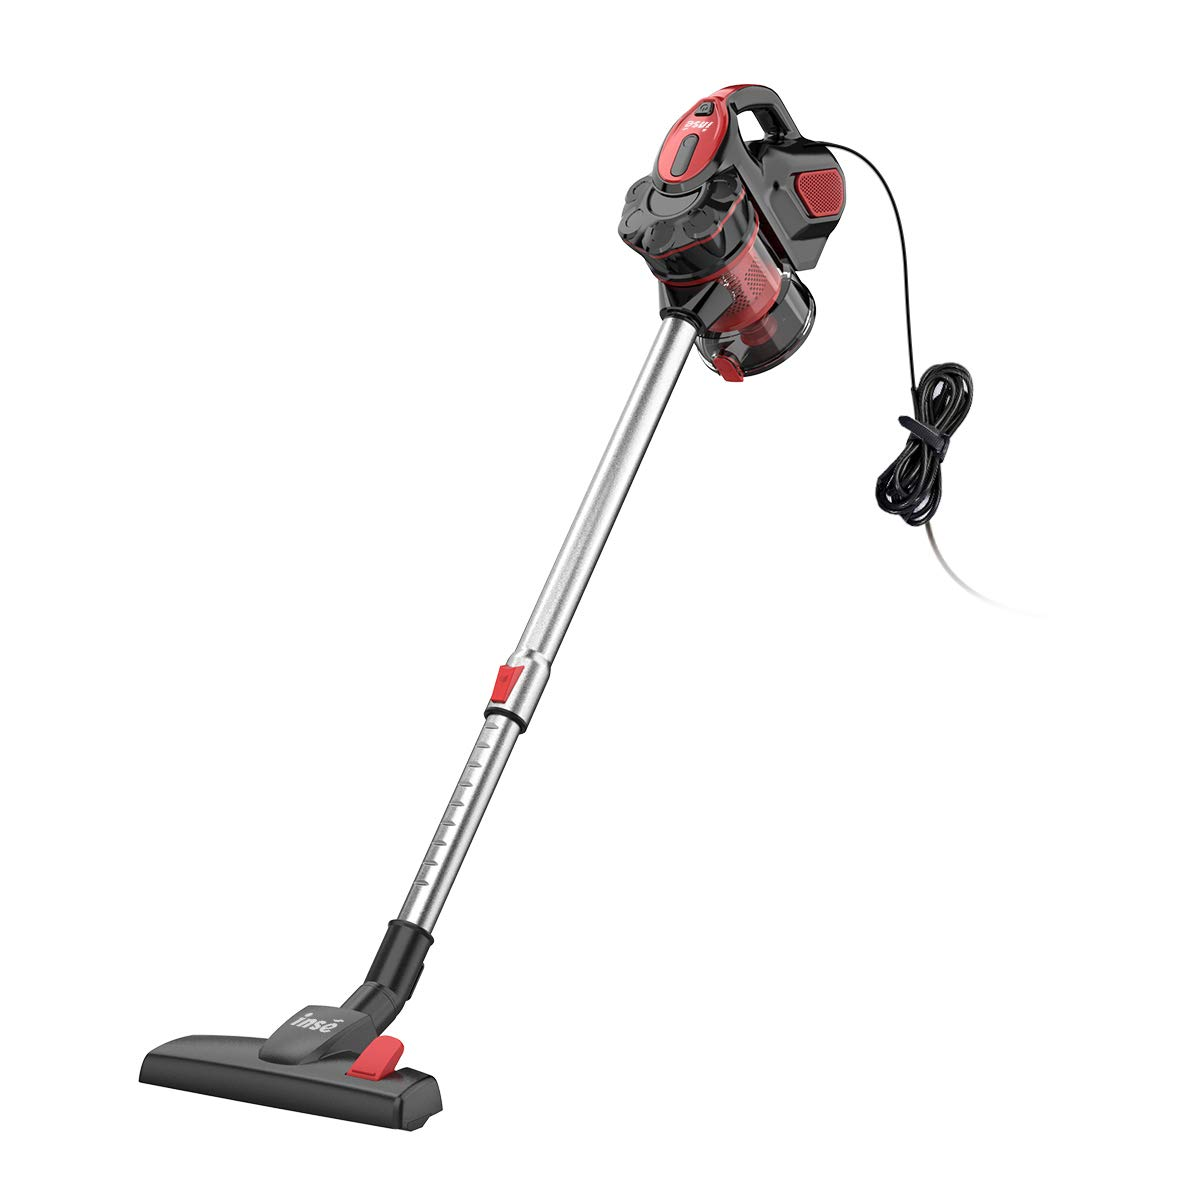 INSE Vacuum Cleaner Corded Stick Handheld 2 in 1 Vacumes for Hardwood Low-Medium Pile Carpet Pet Hair 18KPA 600W - I5